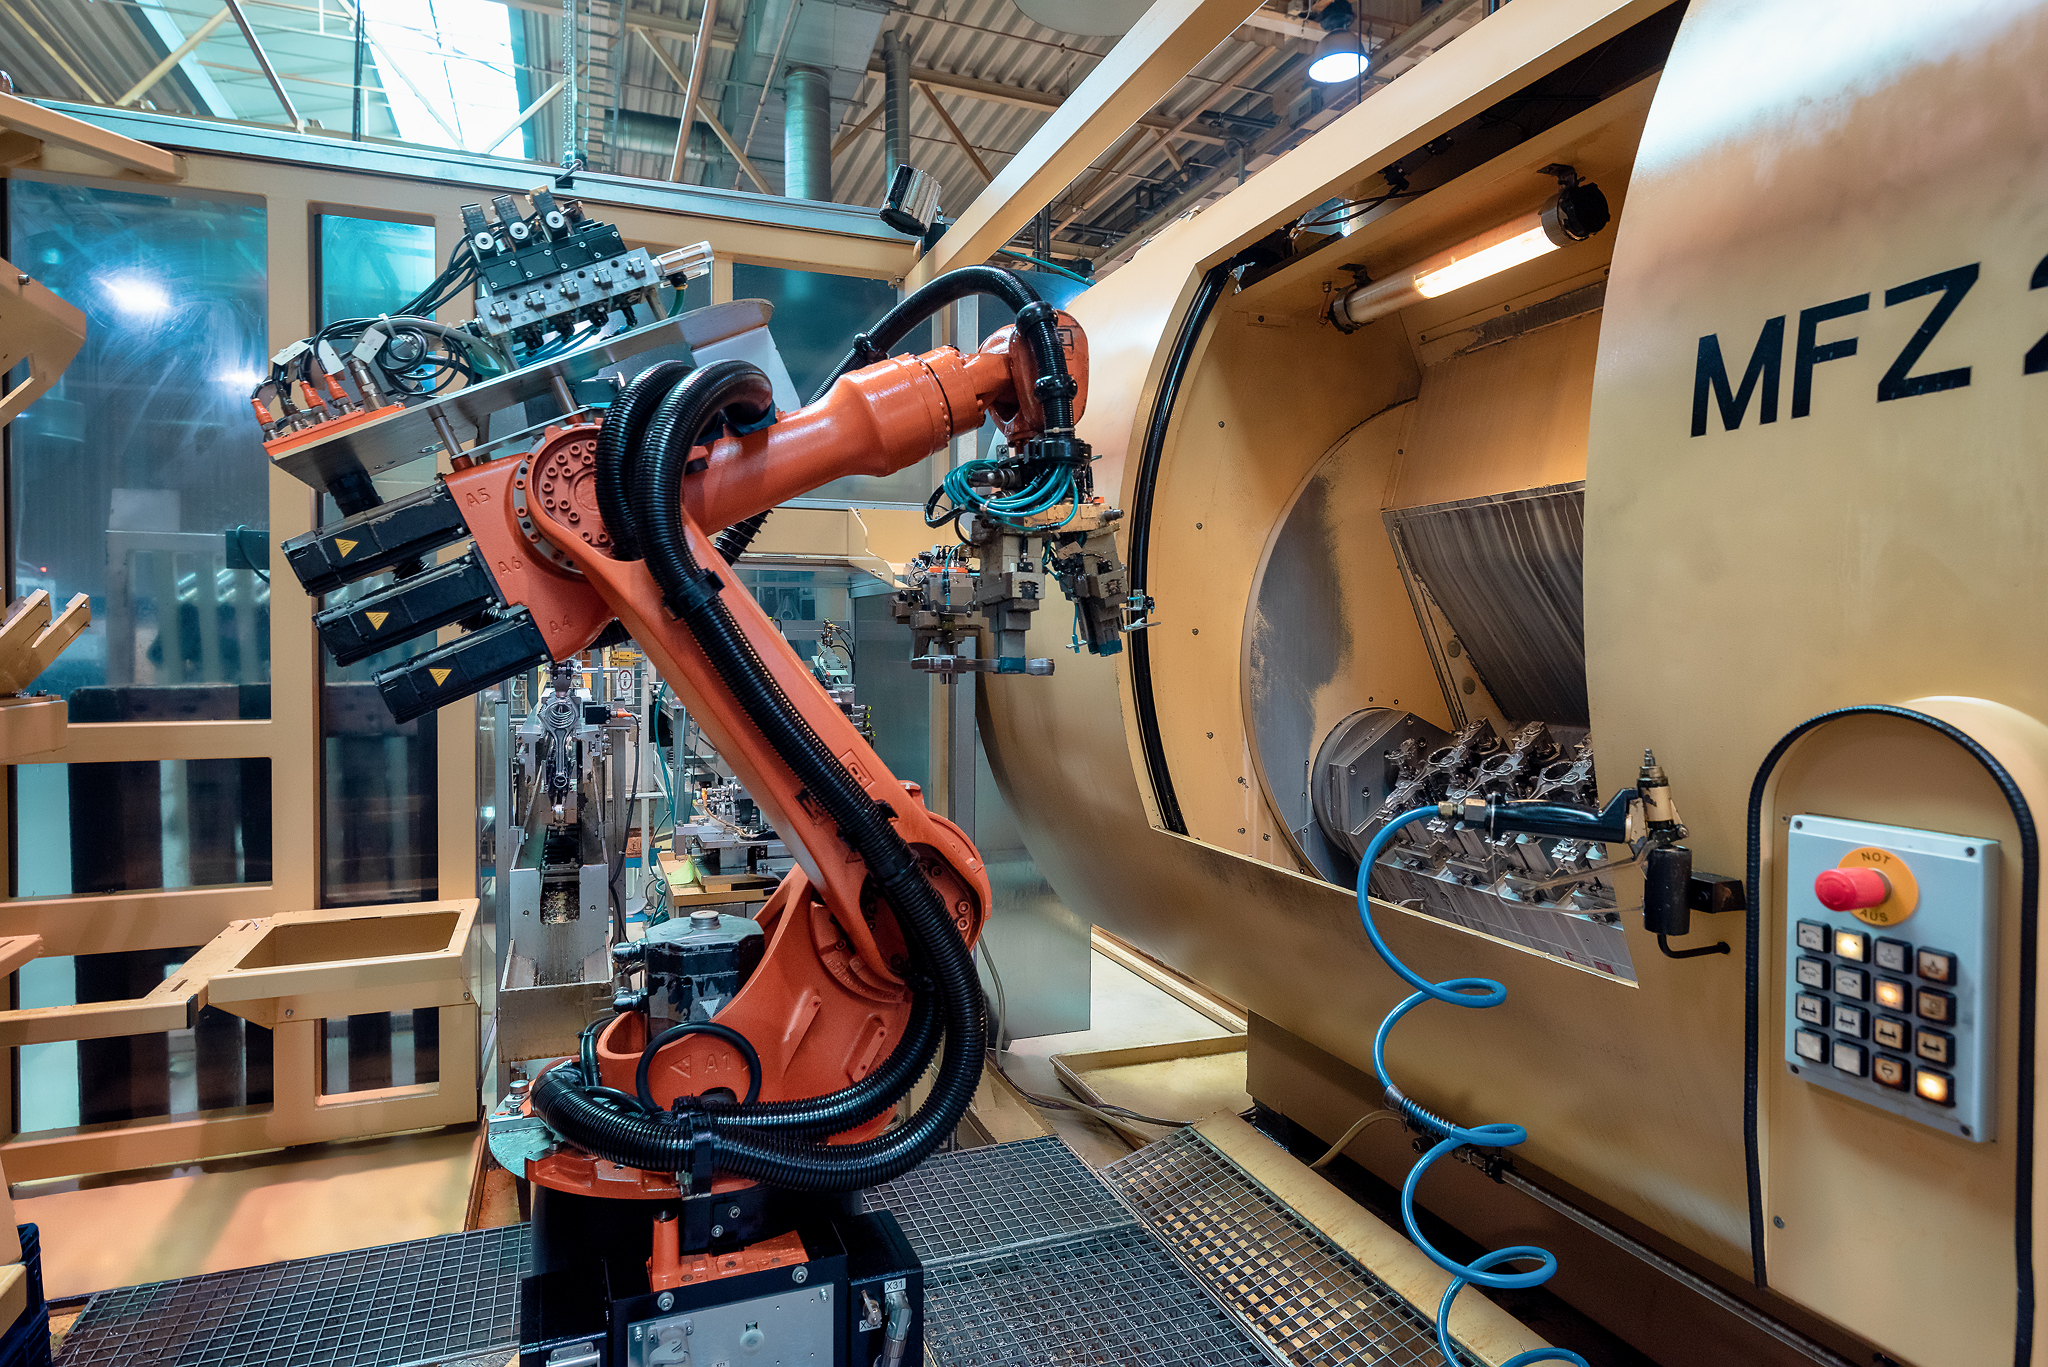 The inclusion of the industrial robot required an intensive image retouching to remove the chips and make the image look clean. The rule of thirds was observed.  Nikon D810 | ISO 500 | Focal length 29mm (Tamron 15-30 SP) | f / 5 | Exposure time 1/30 sec